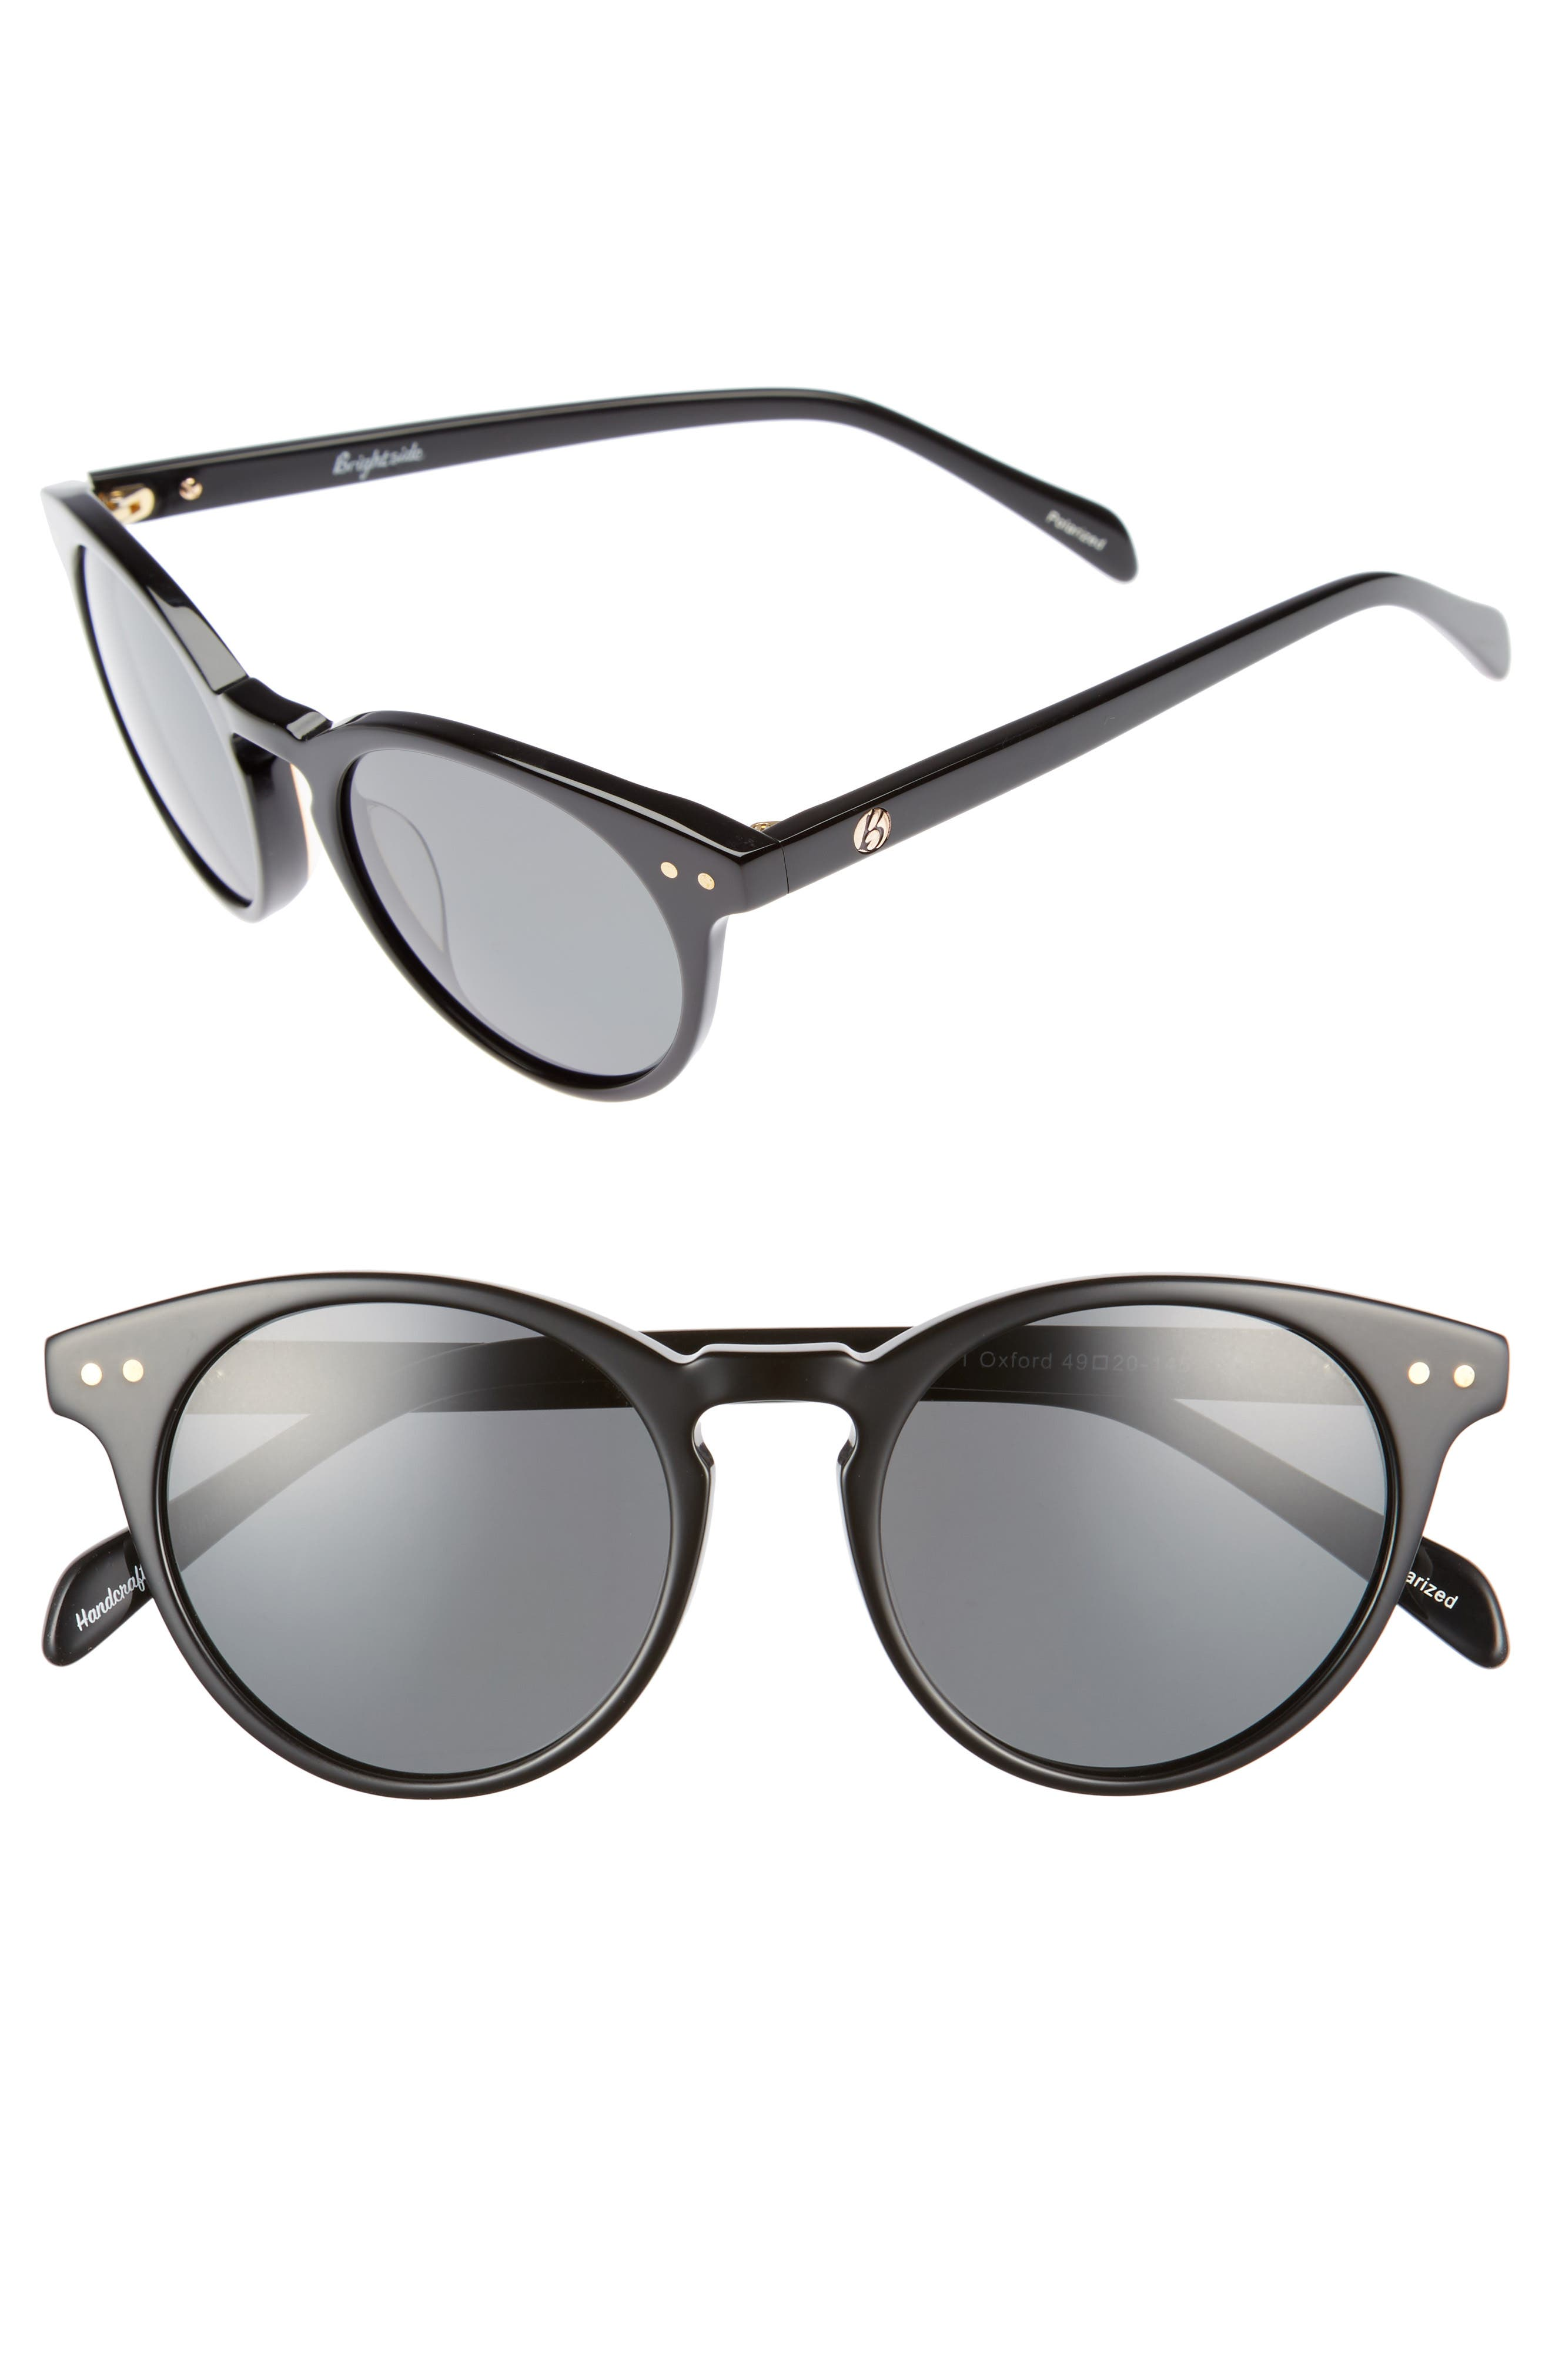 Oxford 49mm Polarized Sunglasses,                         Main,                         color, Black/ Grey Polar